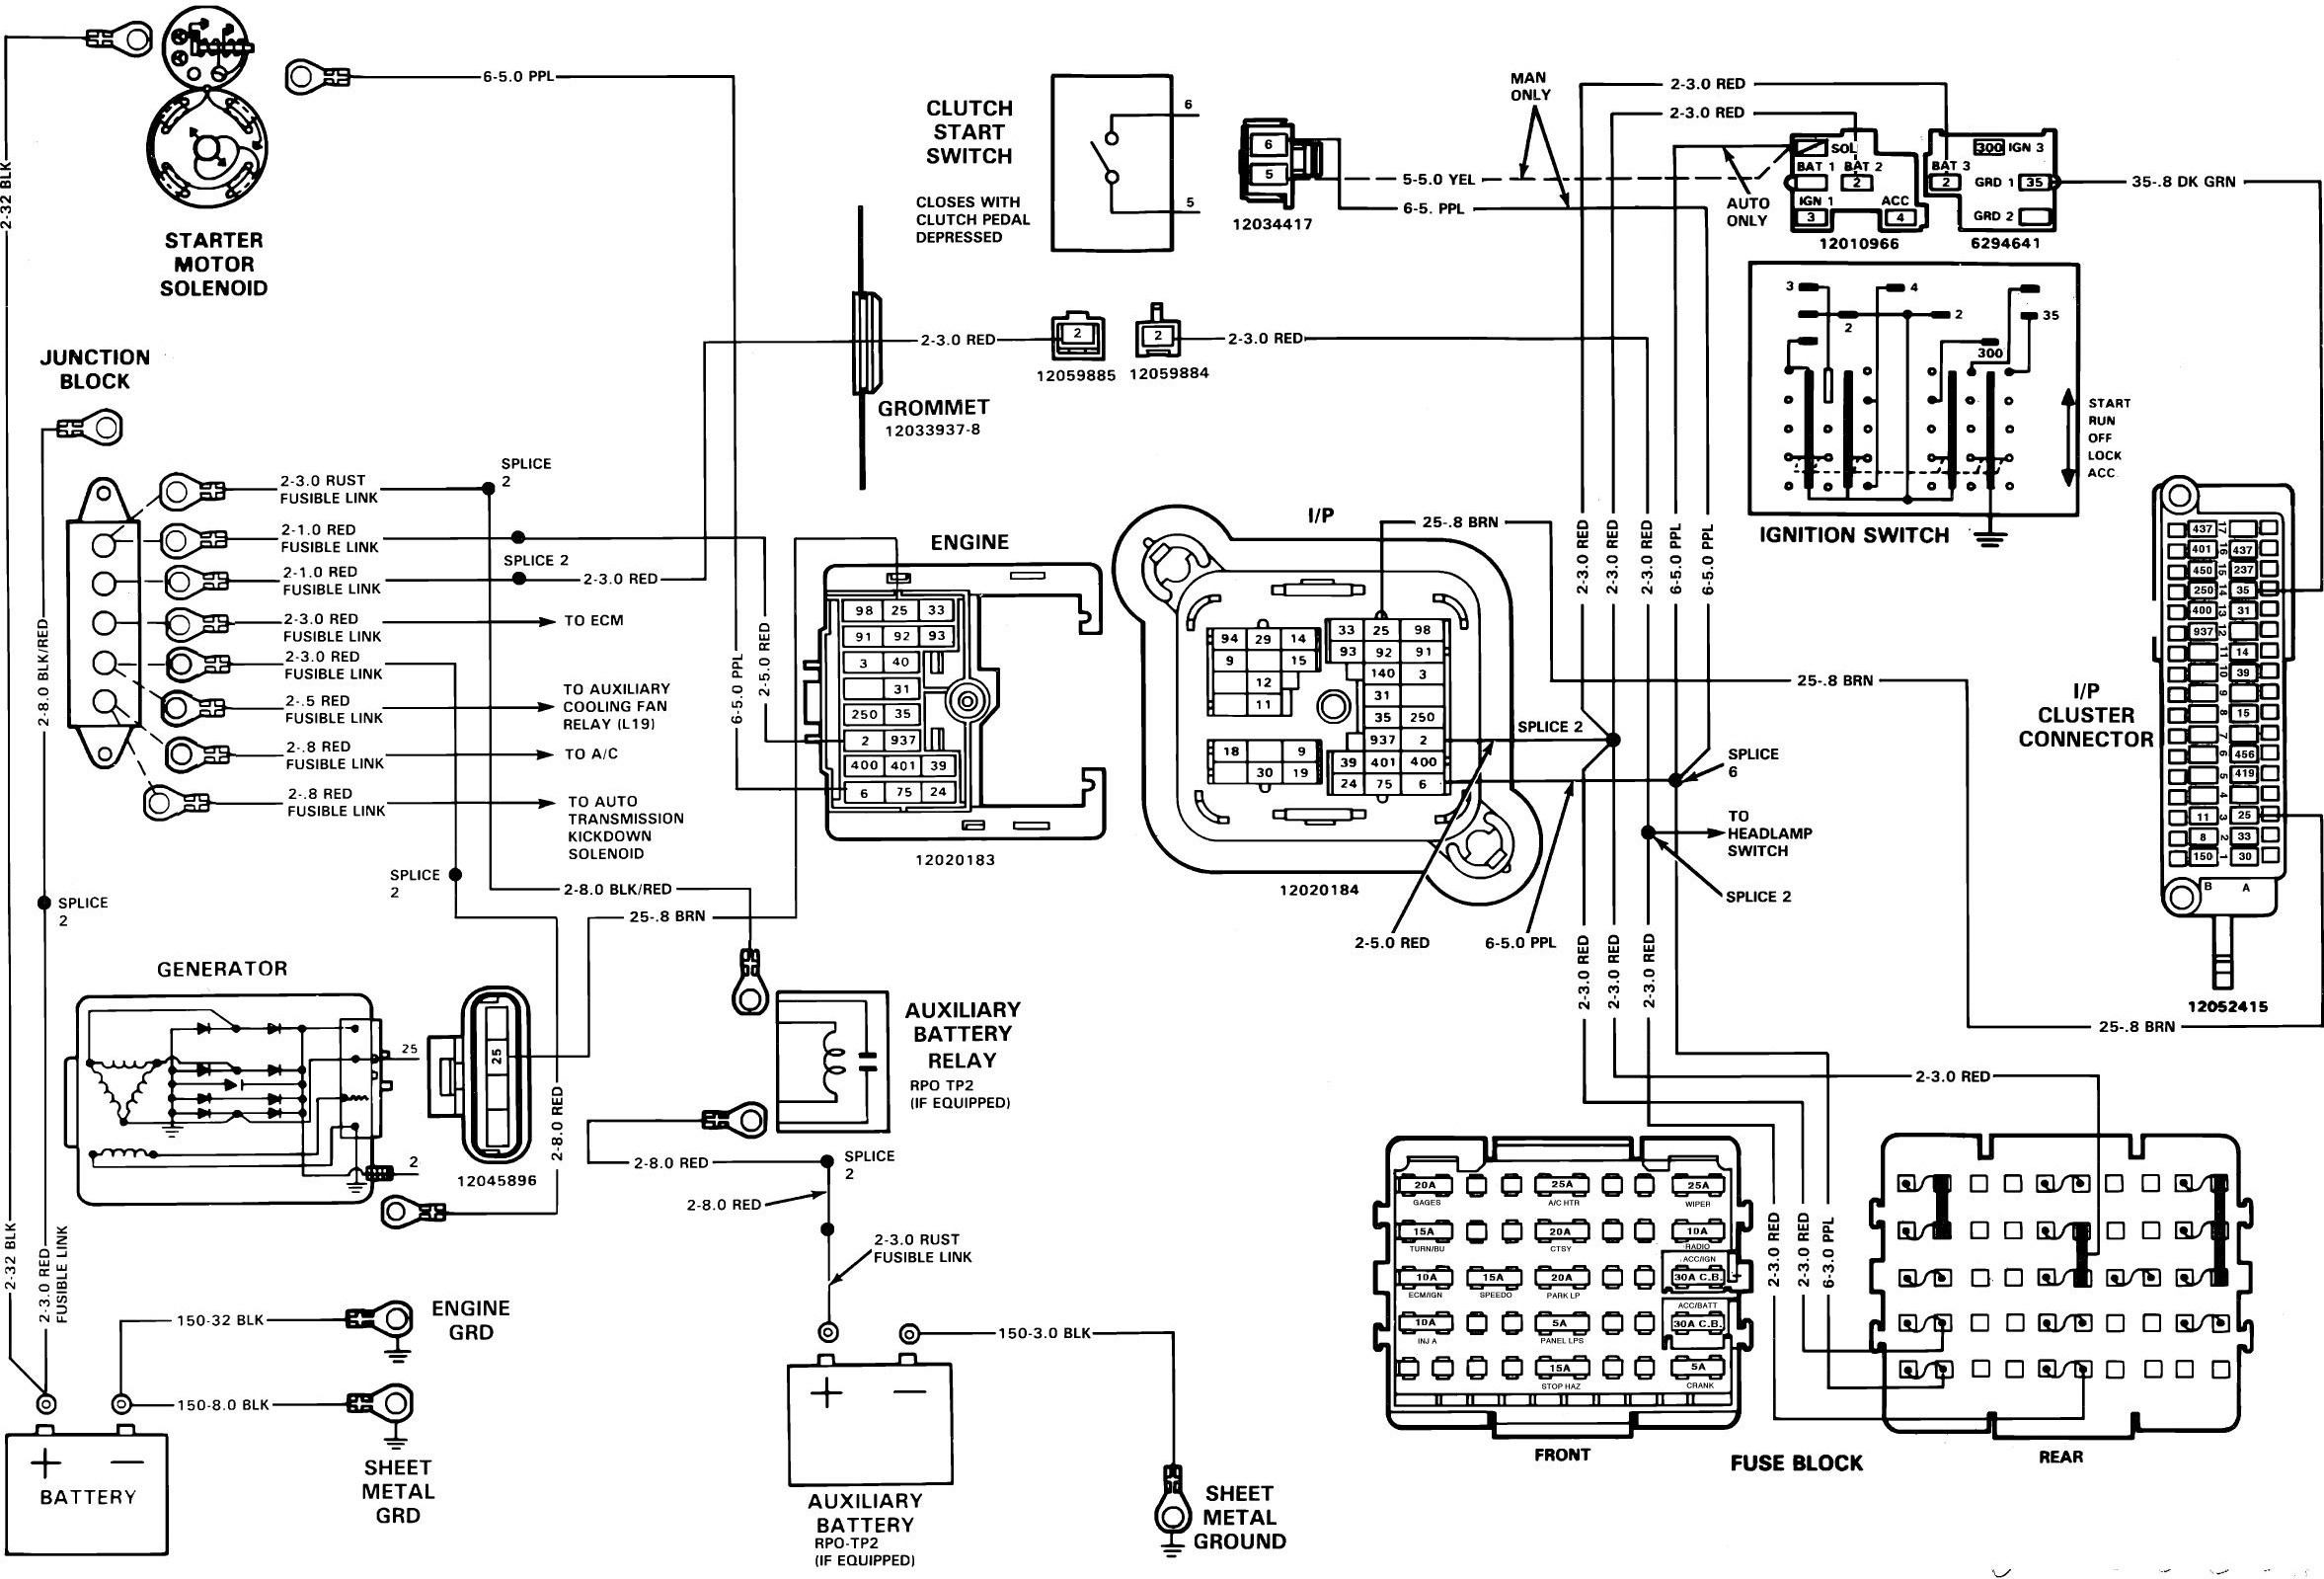 58D0 Alfa Romeo 147 Bose Wiring Diagram | ePANEL Digital Books Alfa Romeo Stereo Wiring Diagram on